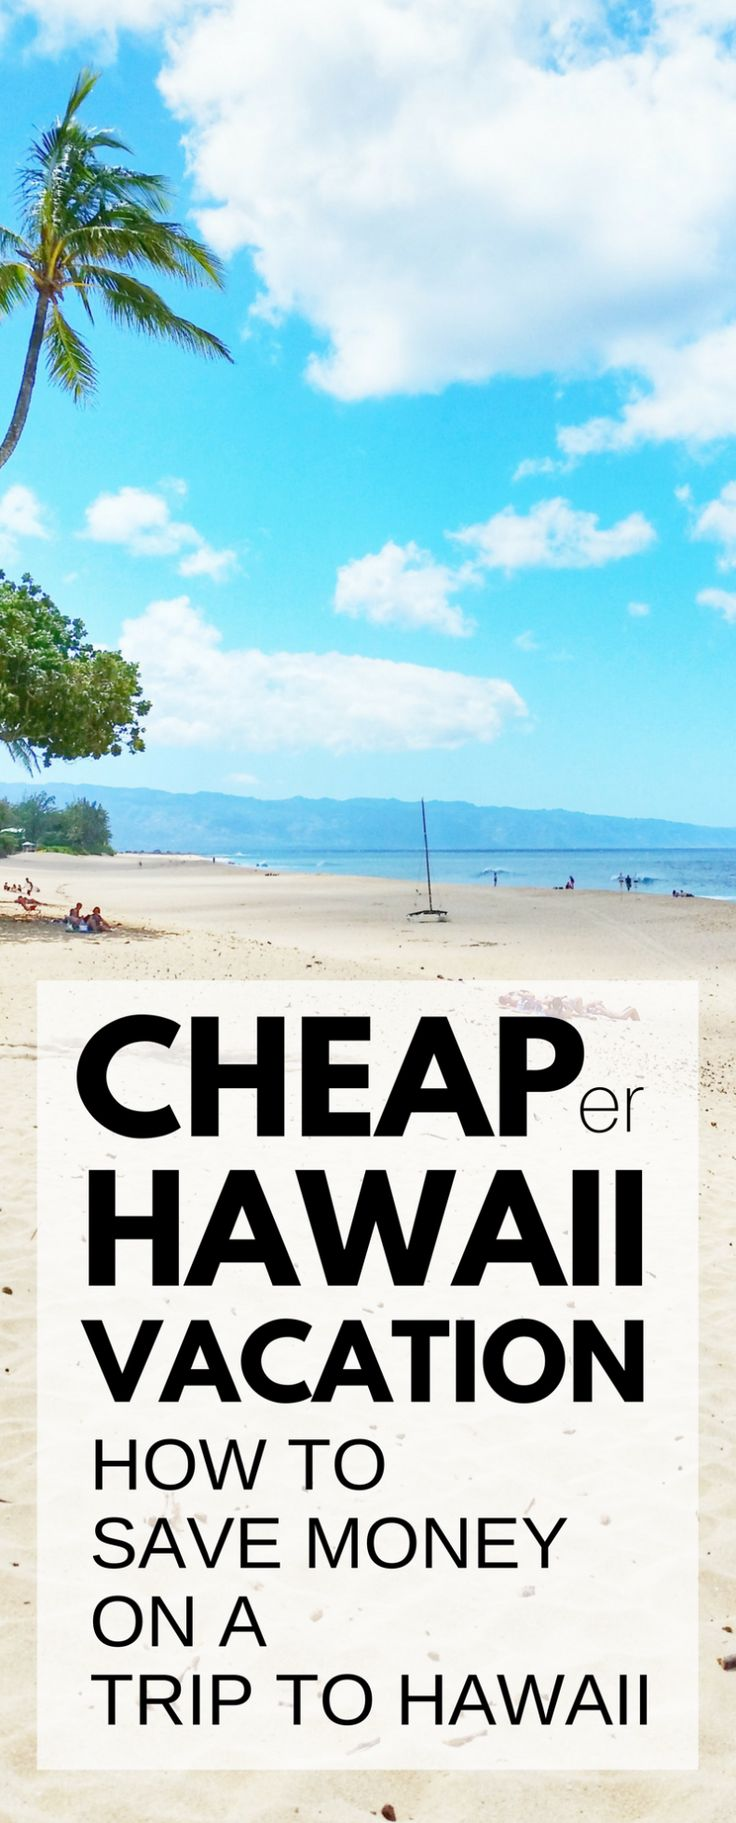 Cheap Hawaii vacation. How to save money on a trip to Hawaii. Things to do in Hawaii on a budget, on Oahu, Maui, Kauai, Big Island, have fun if you like beaches, snorkeling, and hiking! What you pack, wear can add costs for Hawaii packing list, but there are cheap (er) flights, hotels (airbnb vacation rentals), food, free activities.Travel tips, prices for this USA bucket list destination with Waikiki, North Shore! Budget travel tips. #hawaii #oahu #kauai #maui #bigisland #traveltips